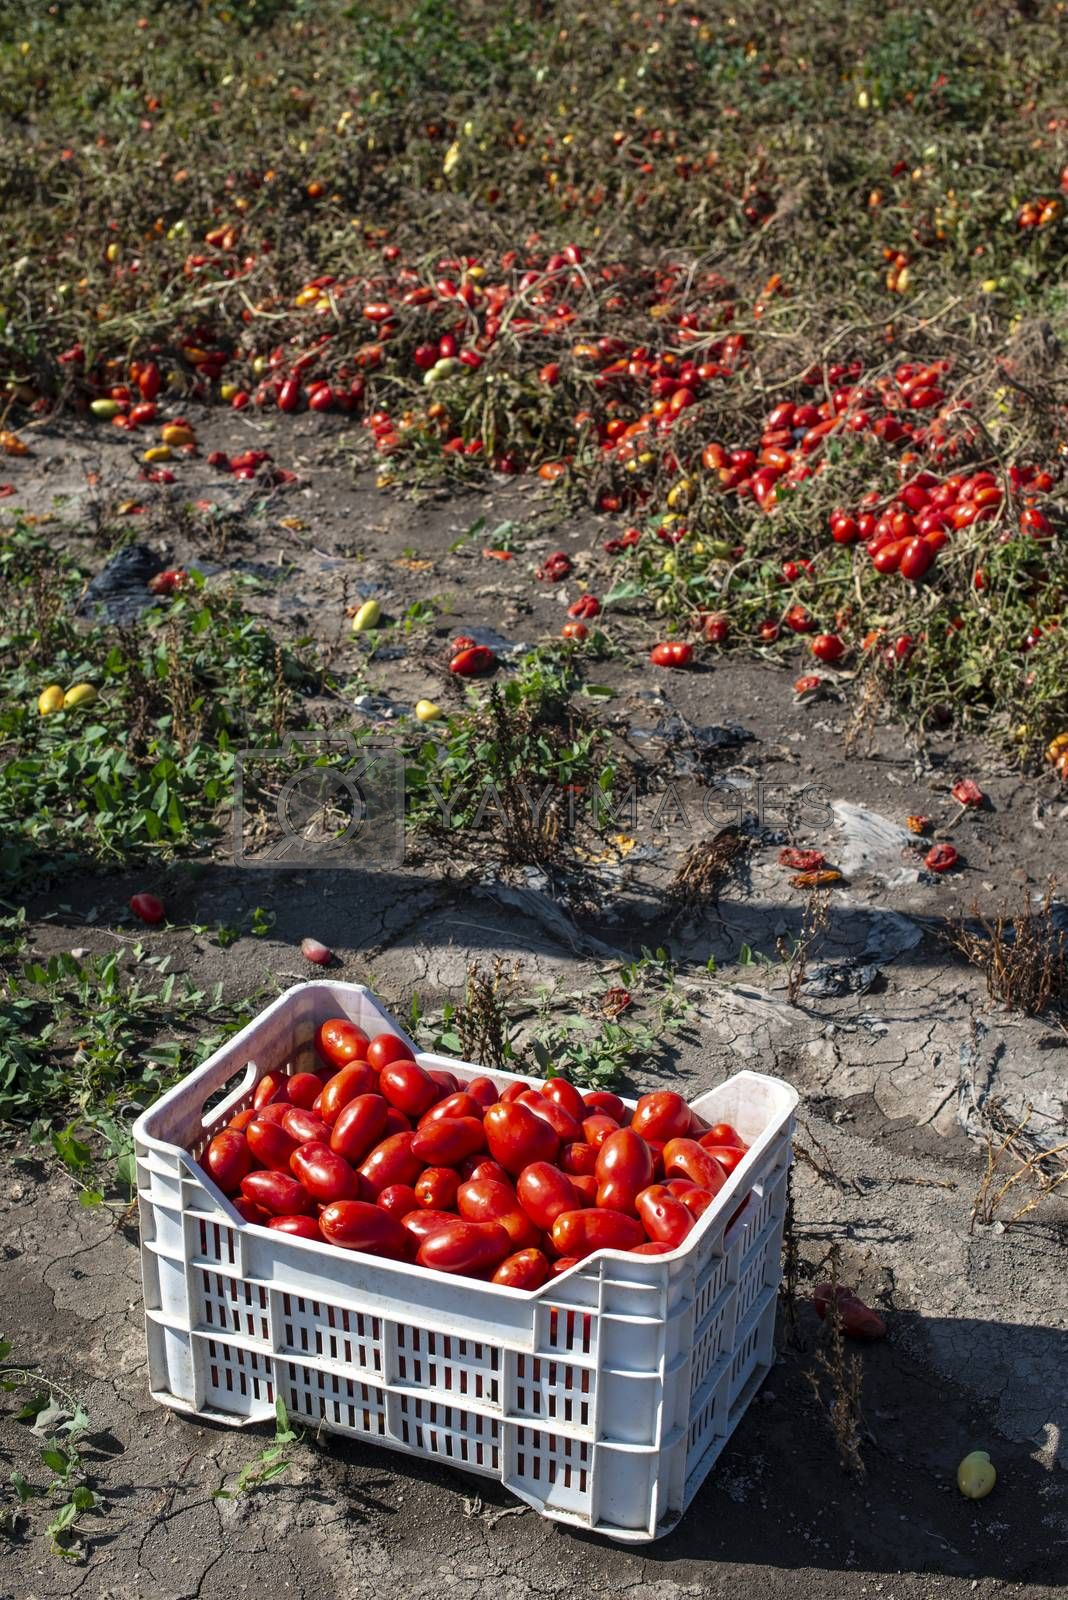 Picking tomatoes manually in crates. Tomato farm. Tomato variety for canning. Growing tomatoes in soil on the field. Sunny day.